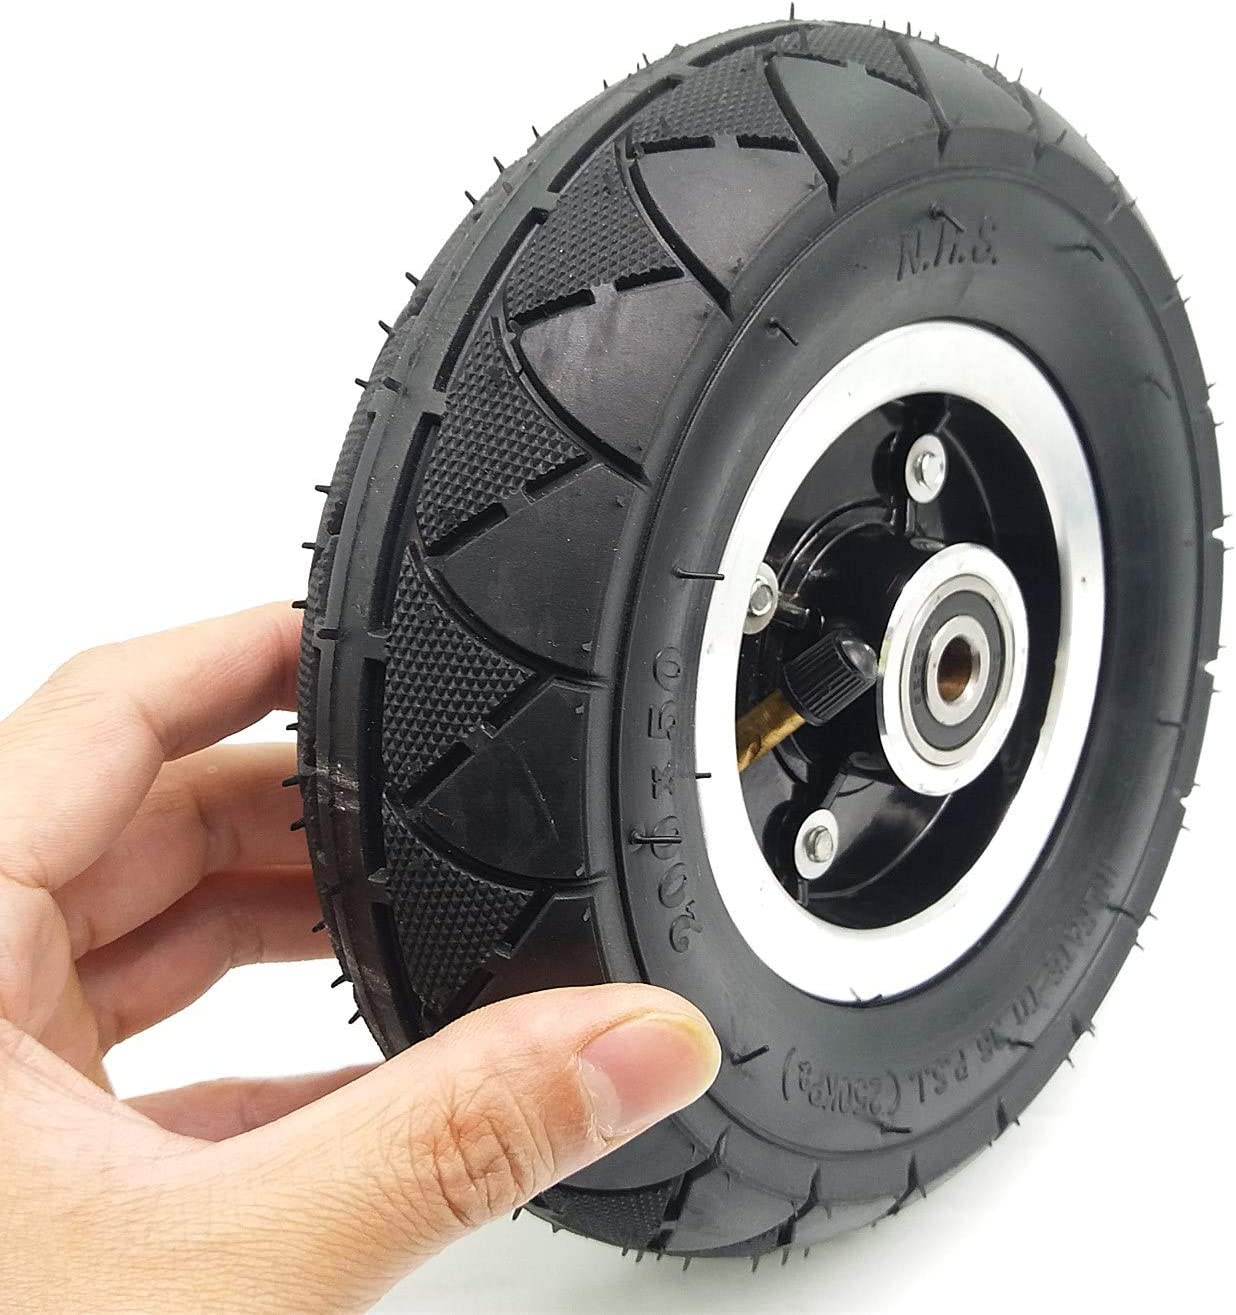 200x50 Electric Scooter Aluminum Front Rim Wheels Front Wheel hub Scooter tires